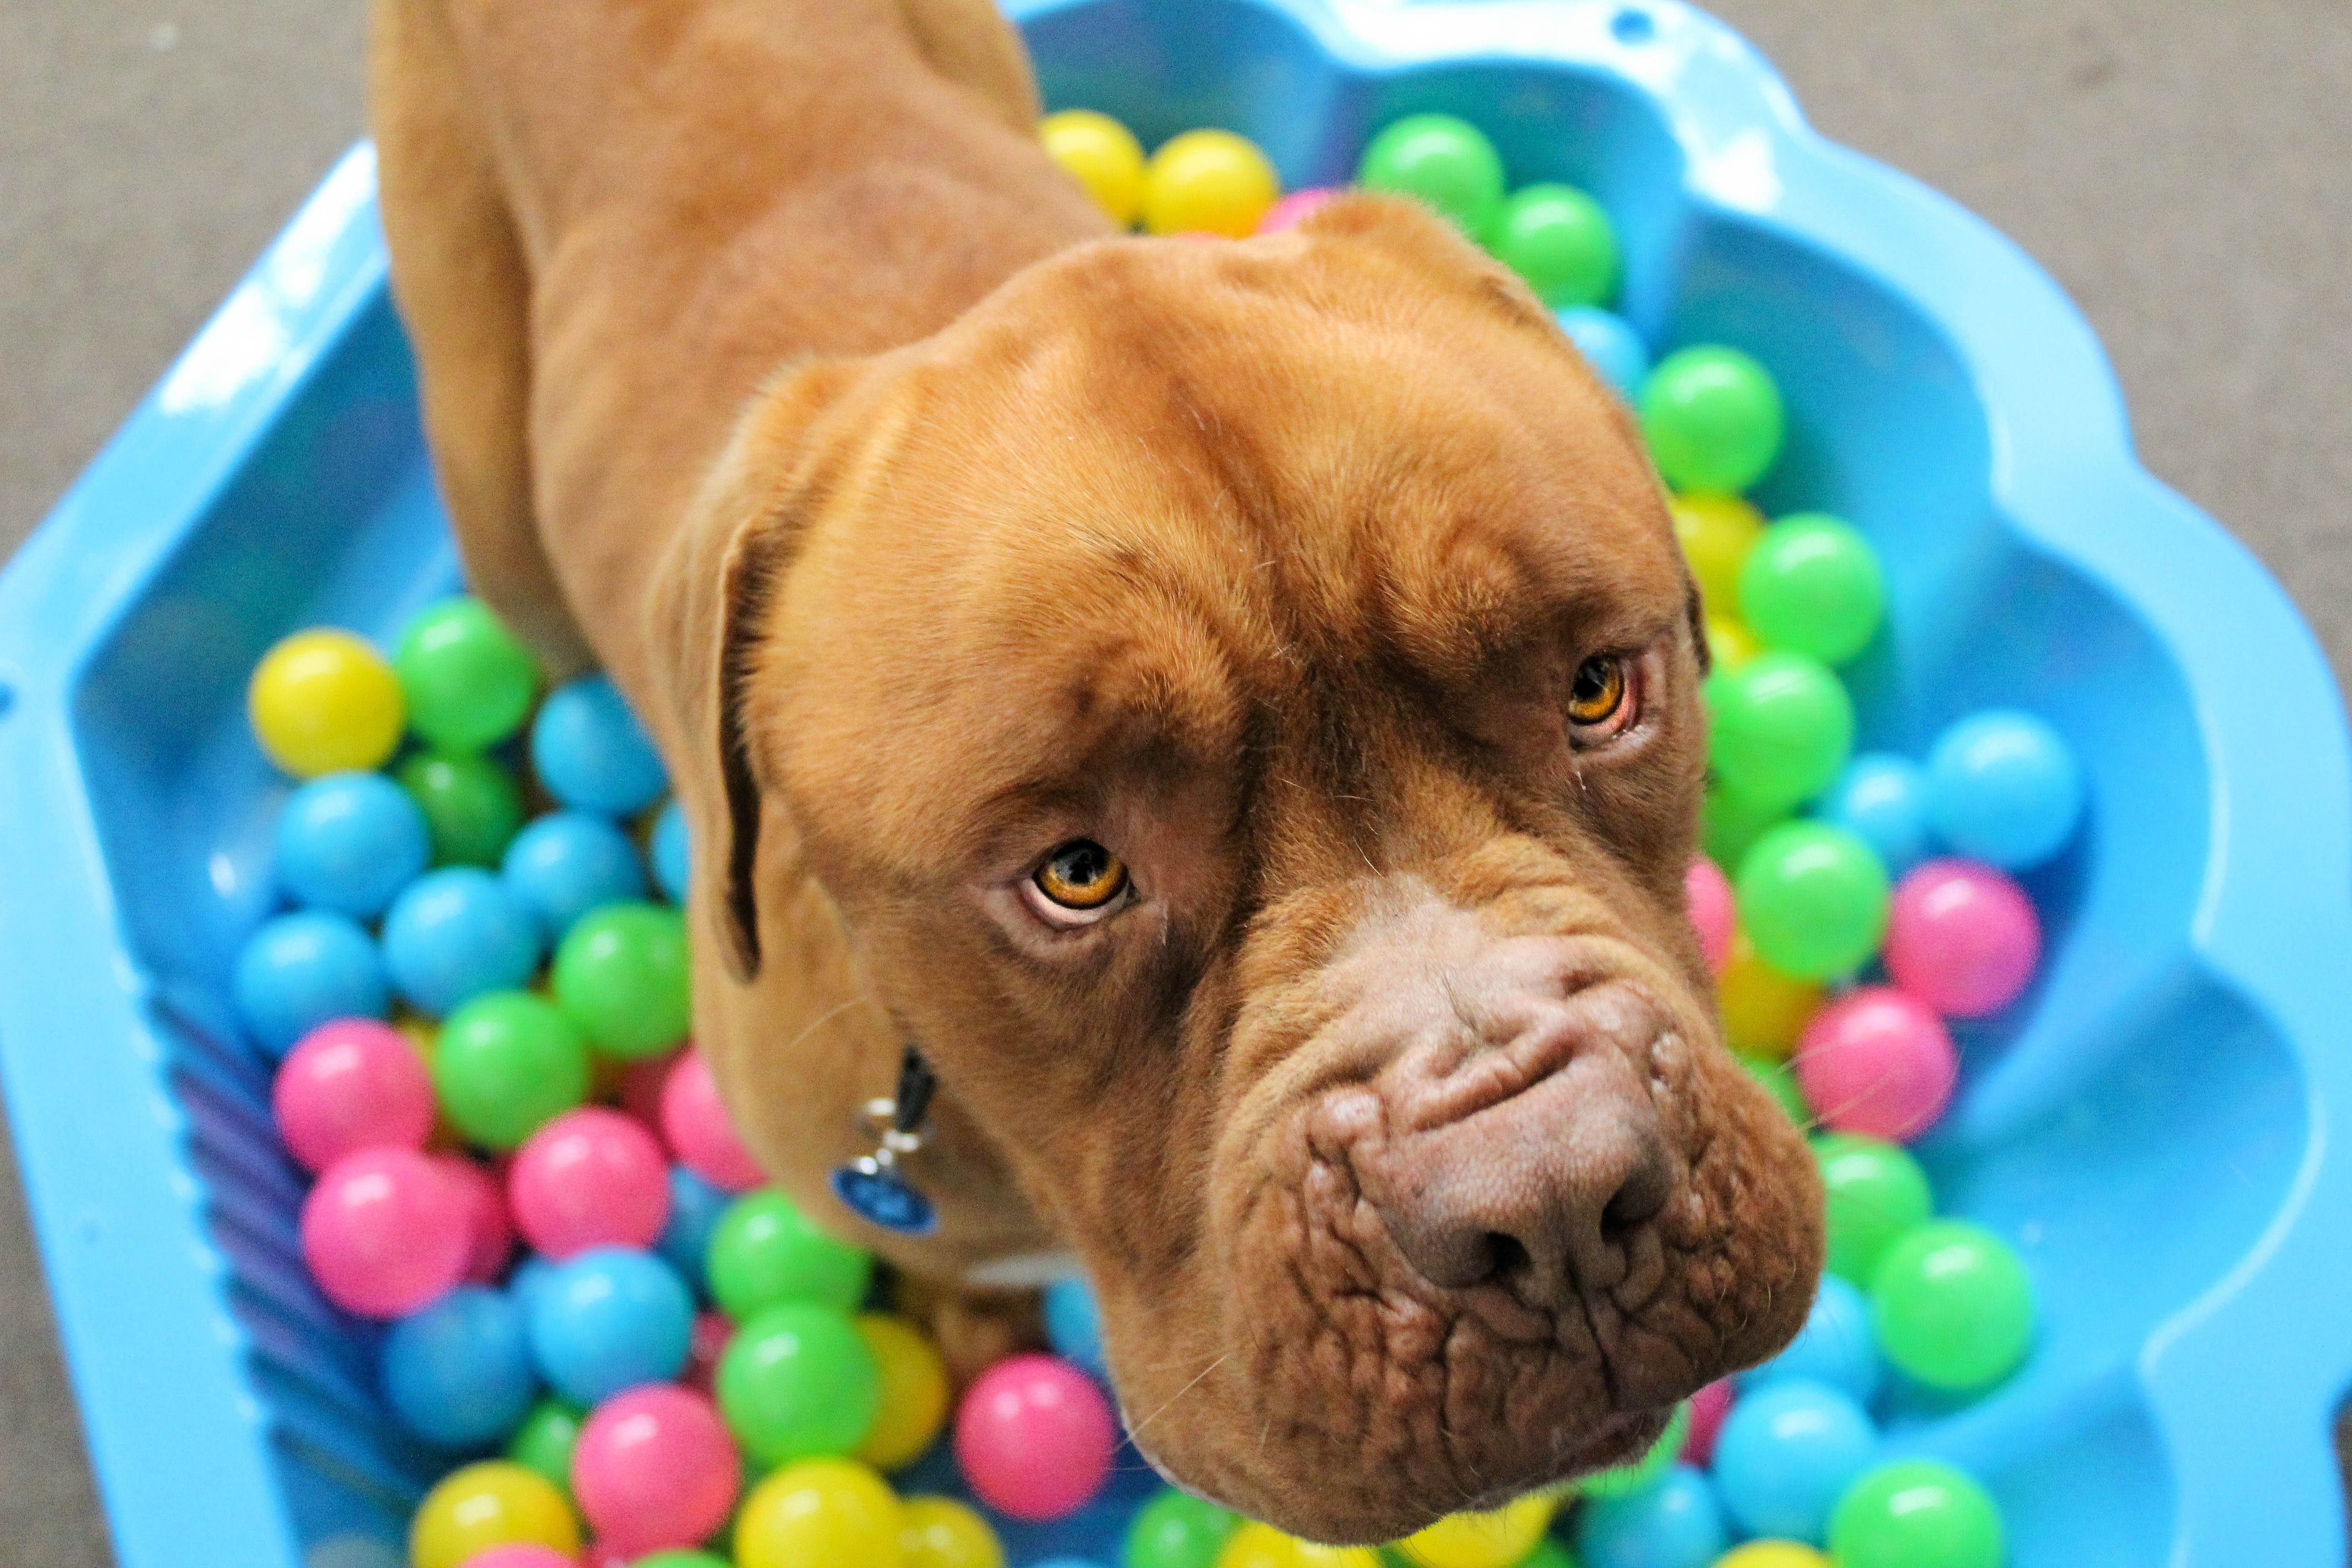 152529 download wallpaper Animals, Dog, Muzzle, Balls, Playful screensavers and pictures for free